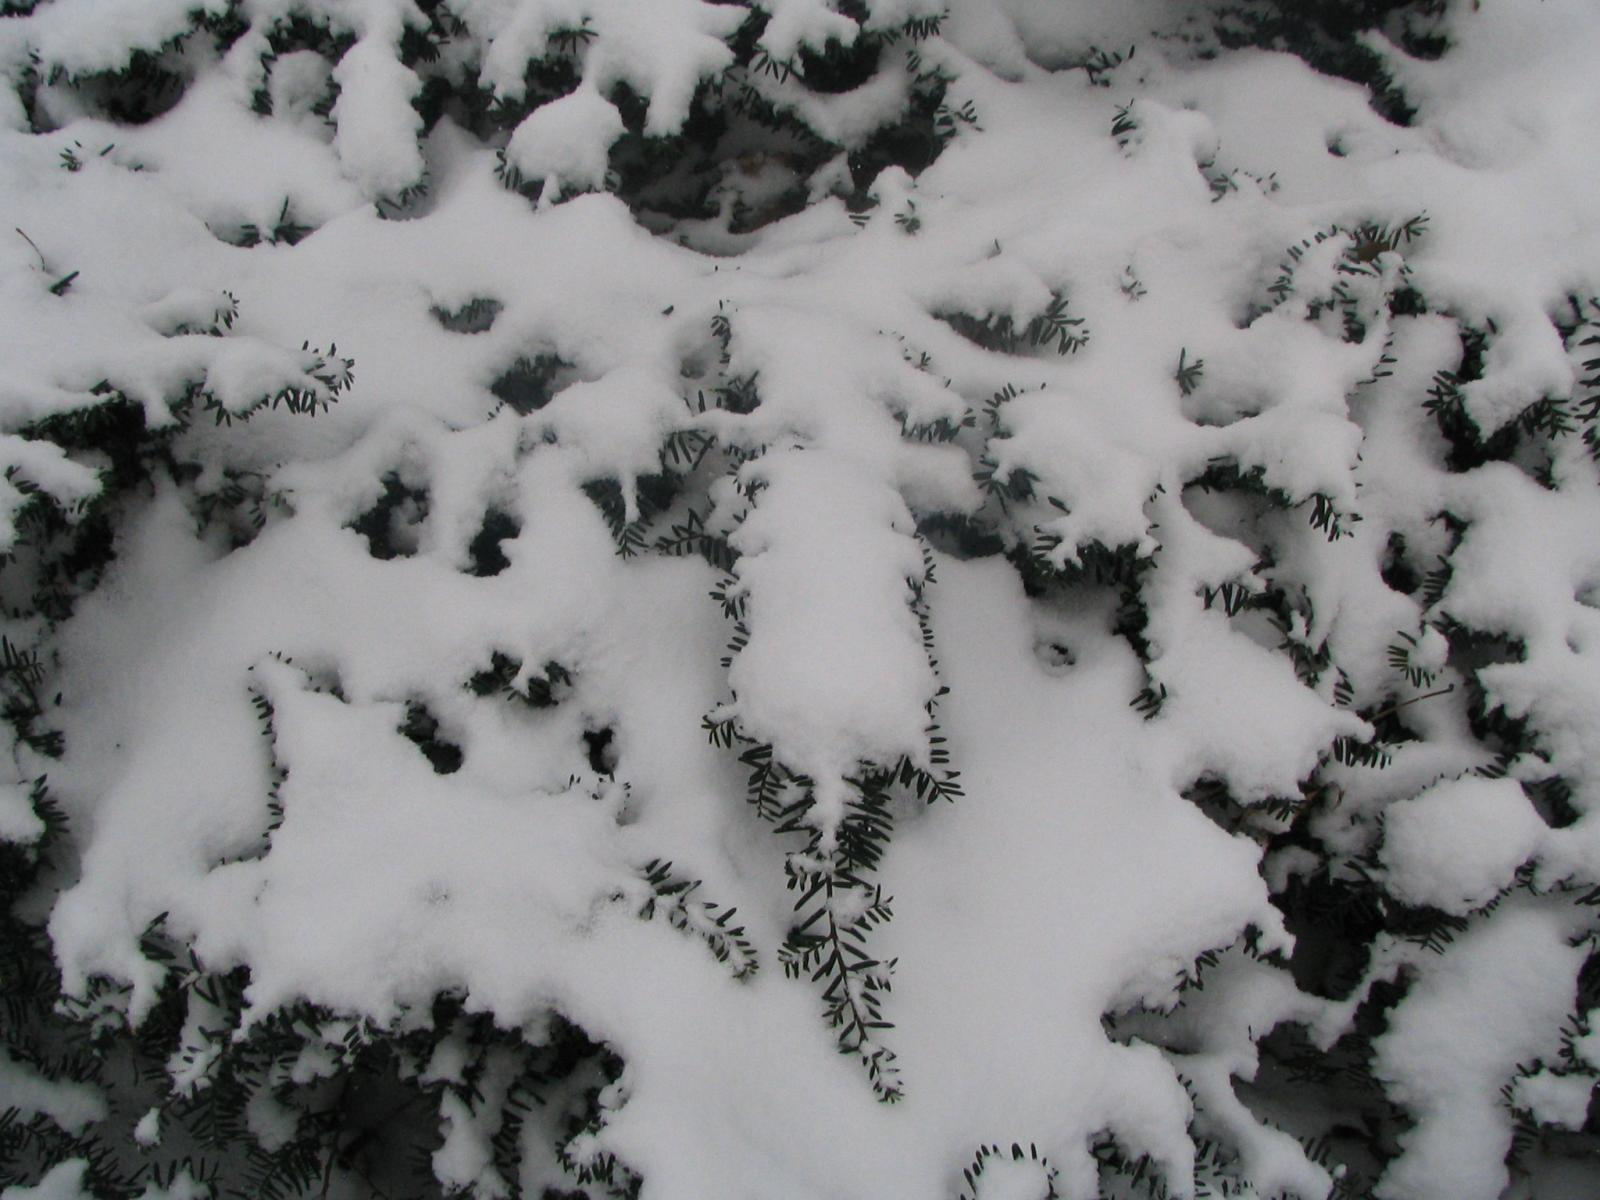 taxus in snow